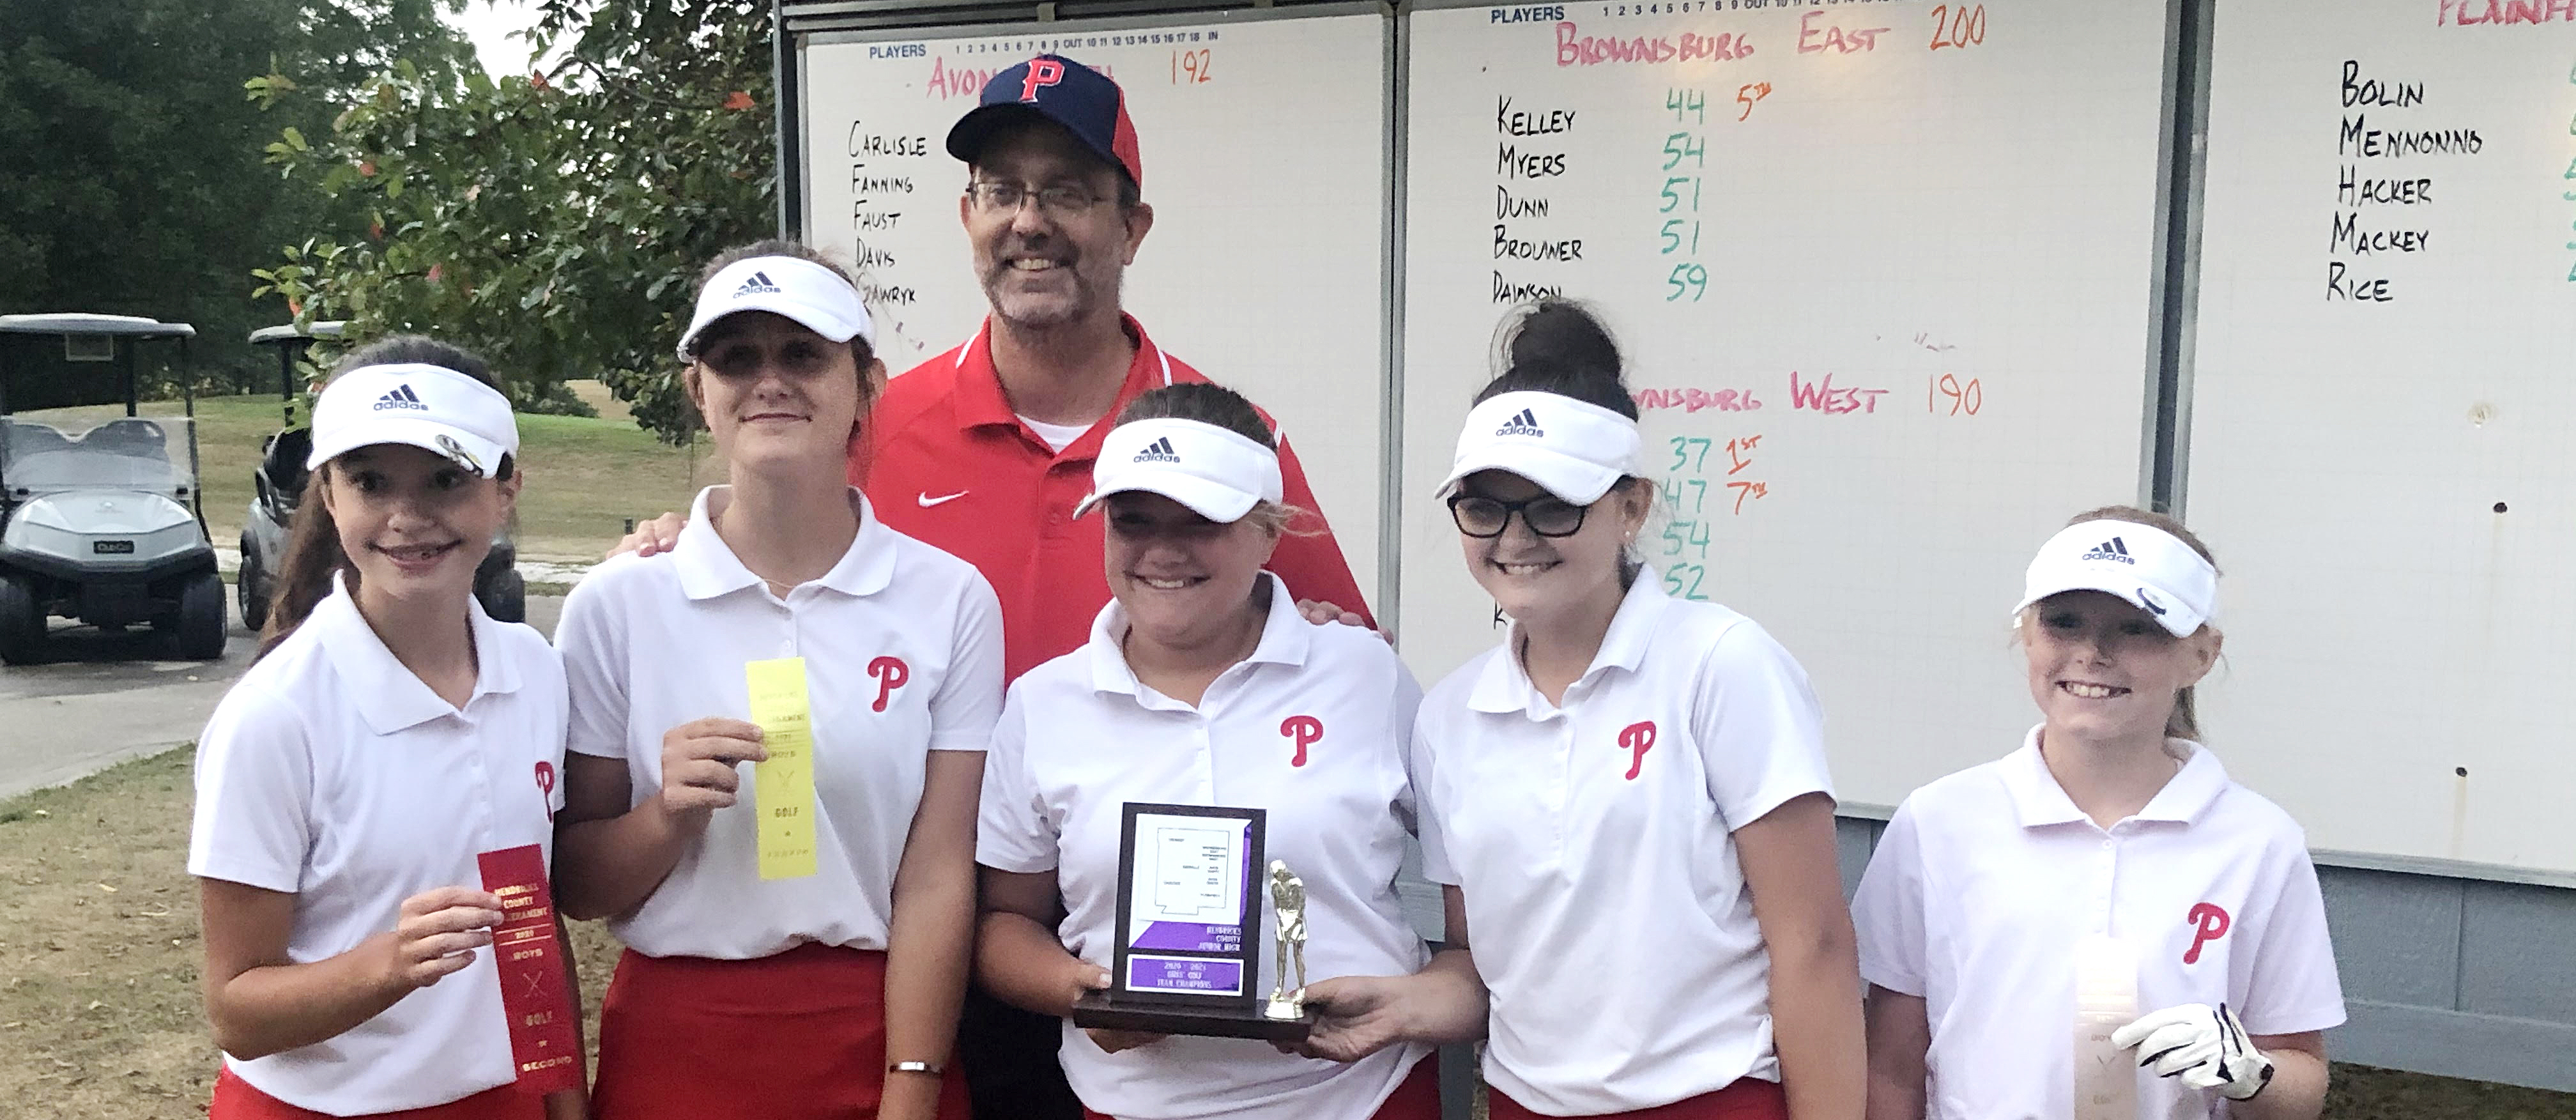 PCMS Girls Golf: County Champs!